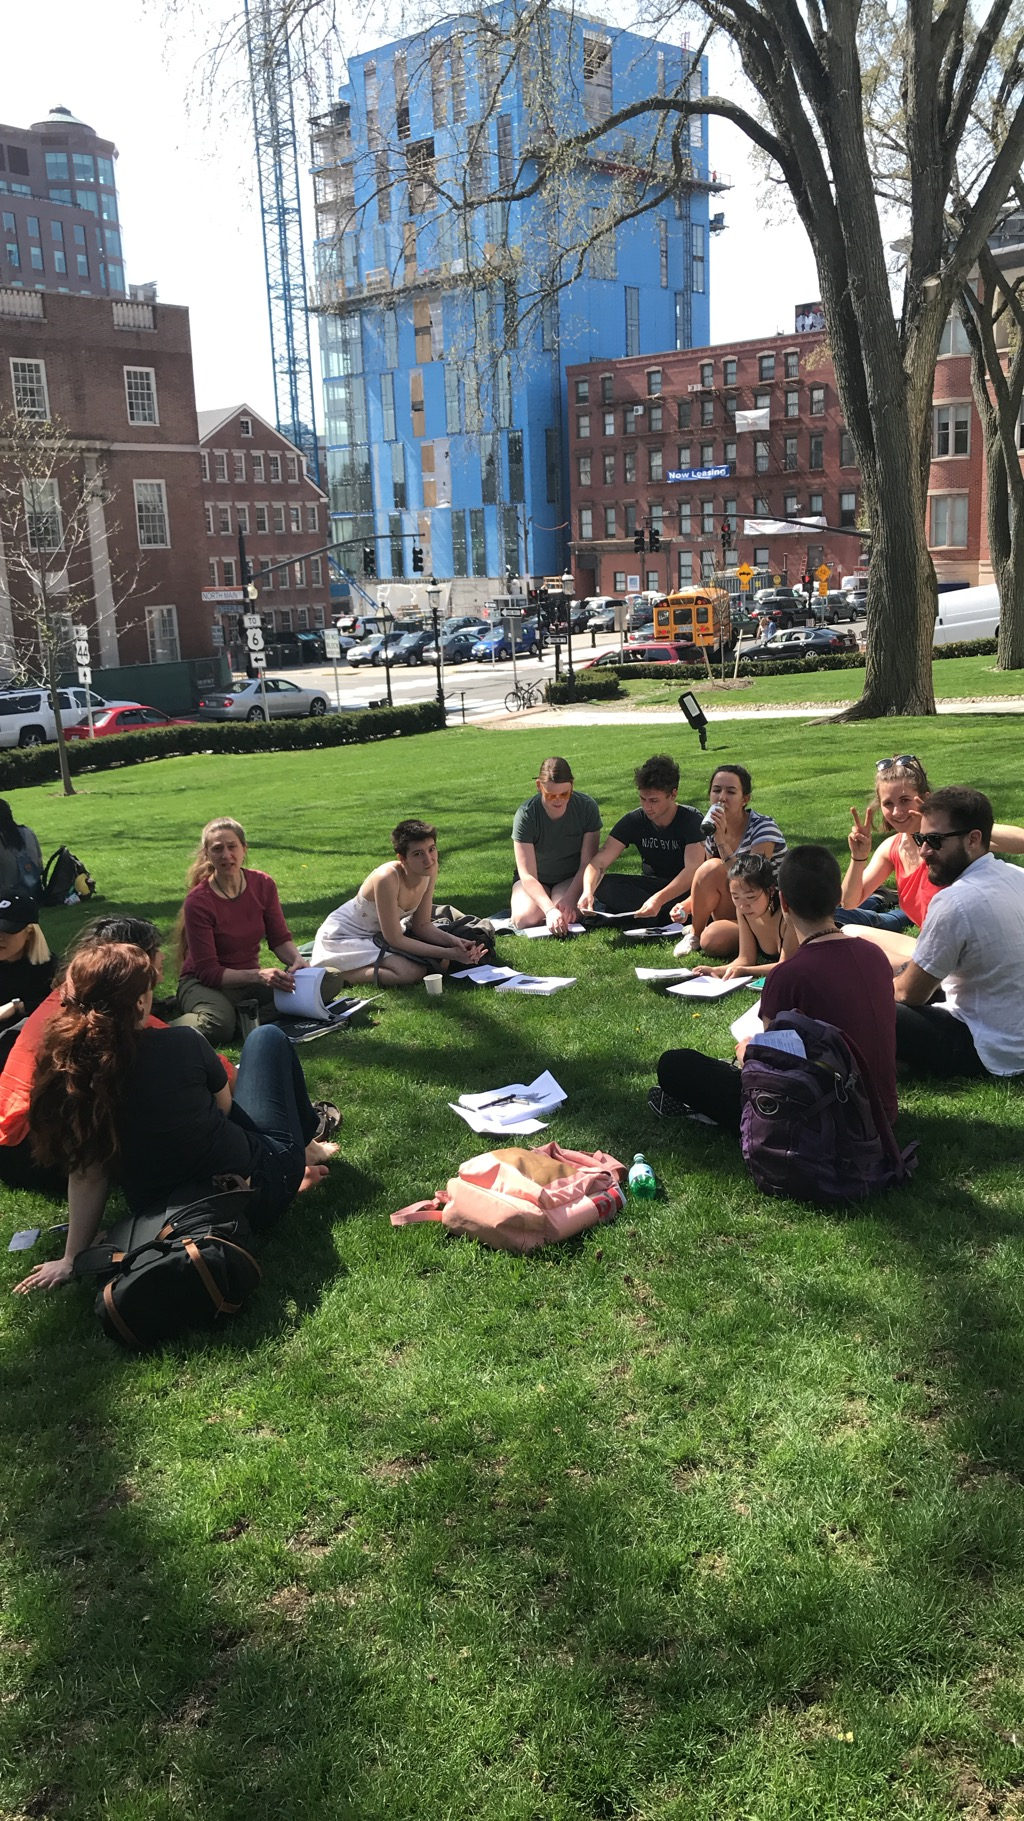 The Degree Program Workshop goes outdoors as spring starts to warm Providence